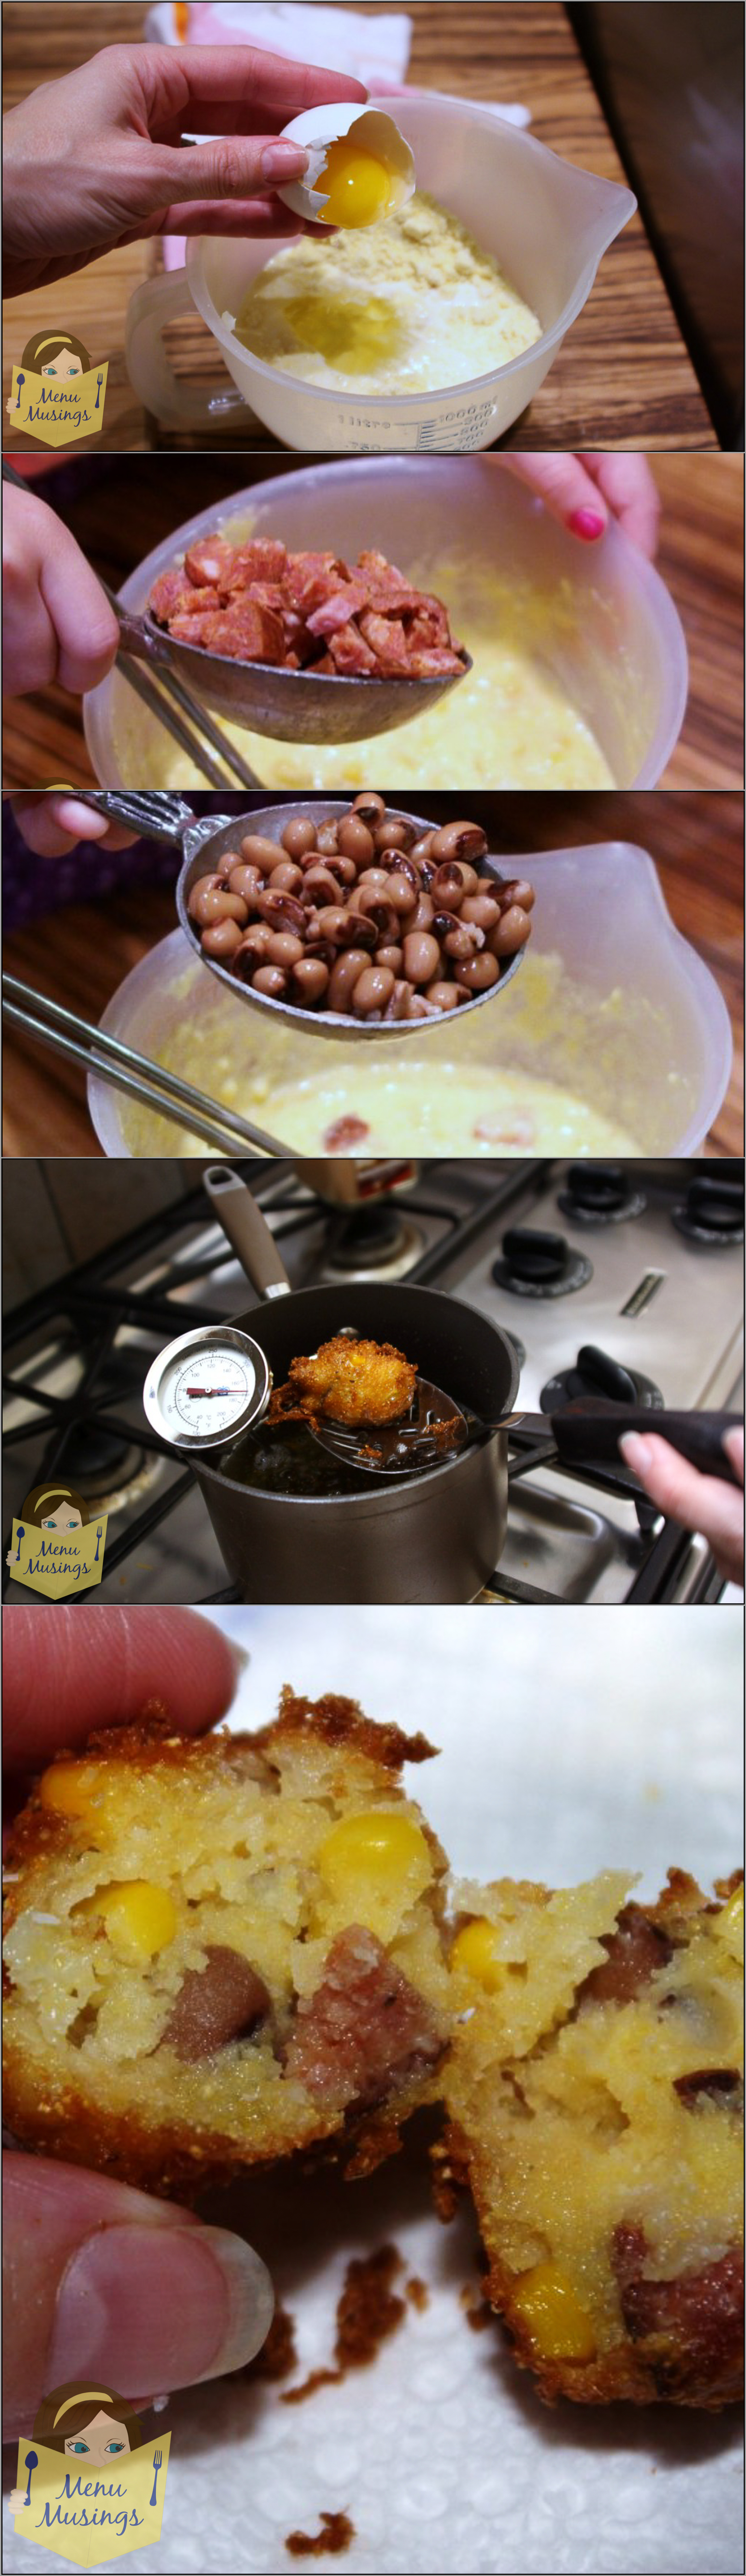 """Hoppin' John Fritters - forget about those """"plain"""" hush puppies! These have some of our favorite Southern goodies tucked inside! Step-by-step photos! <3"""